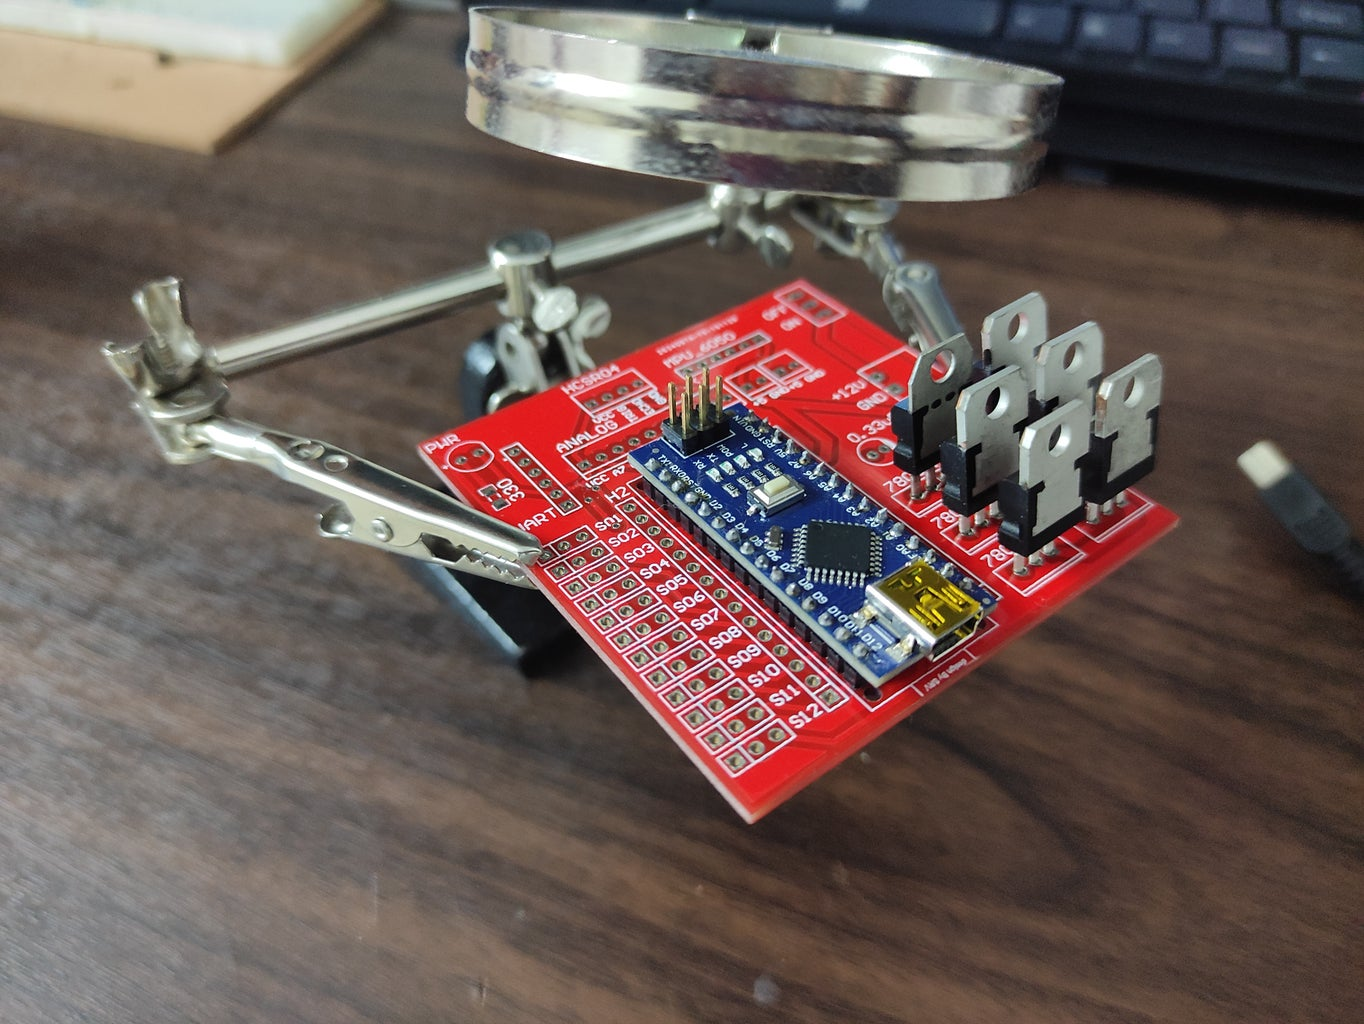 Soldering the Components and Uploading the Code